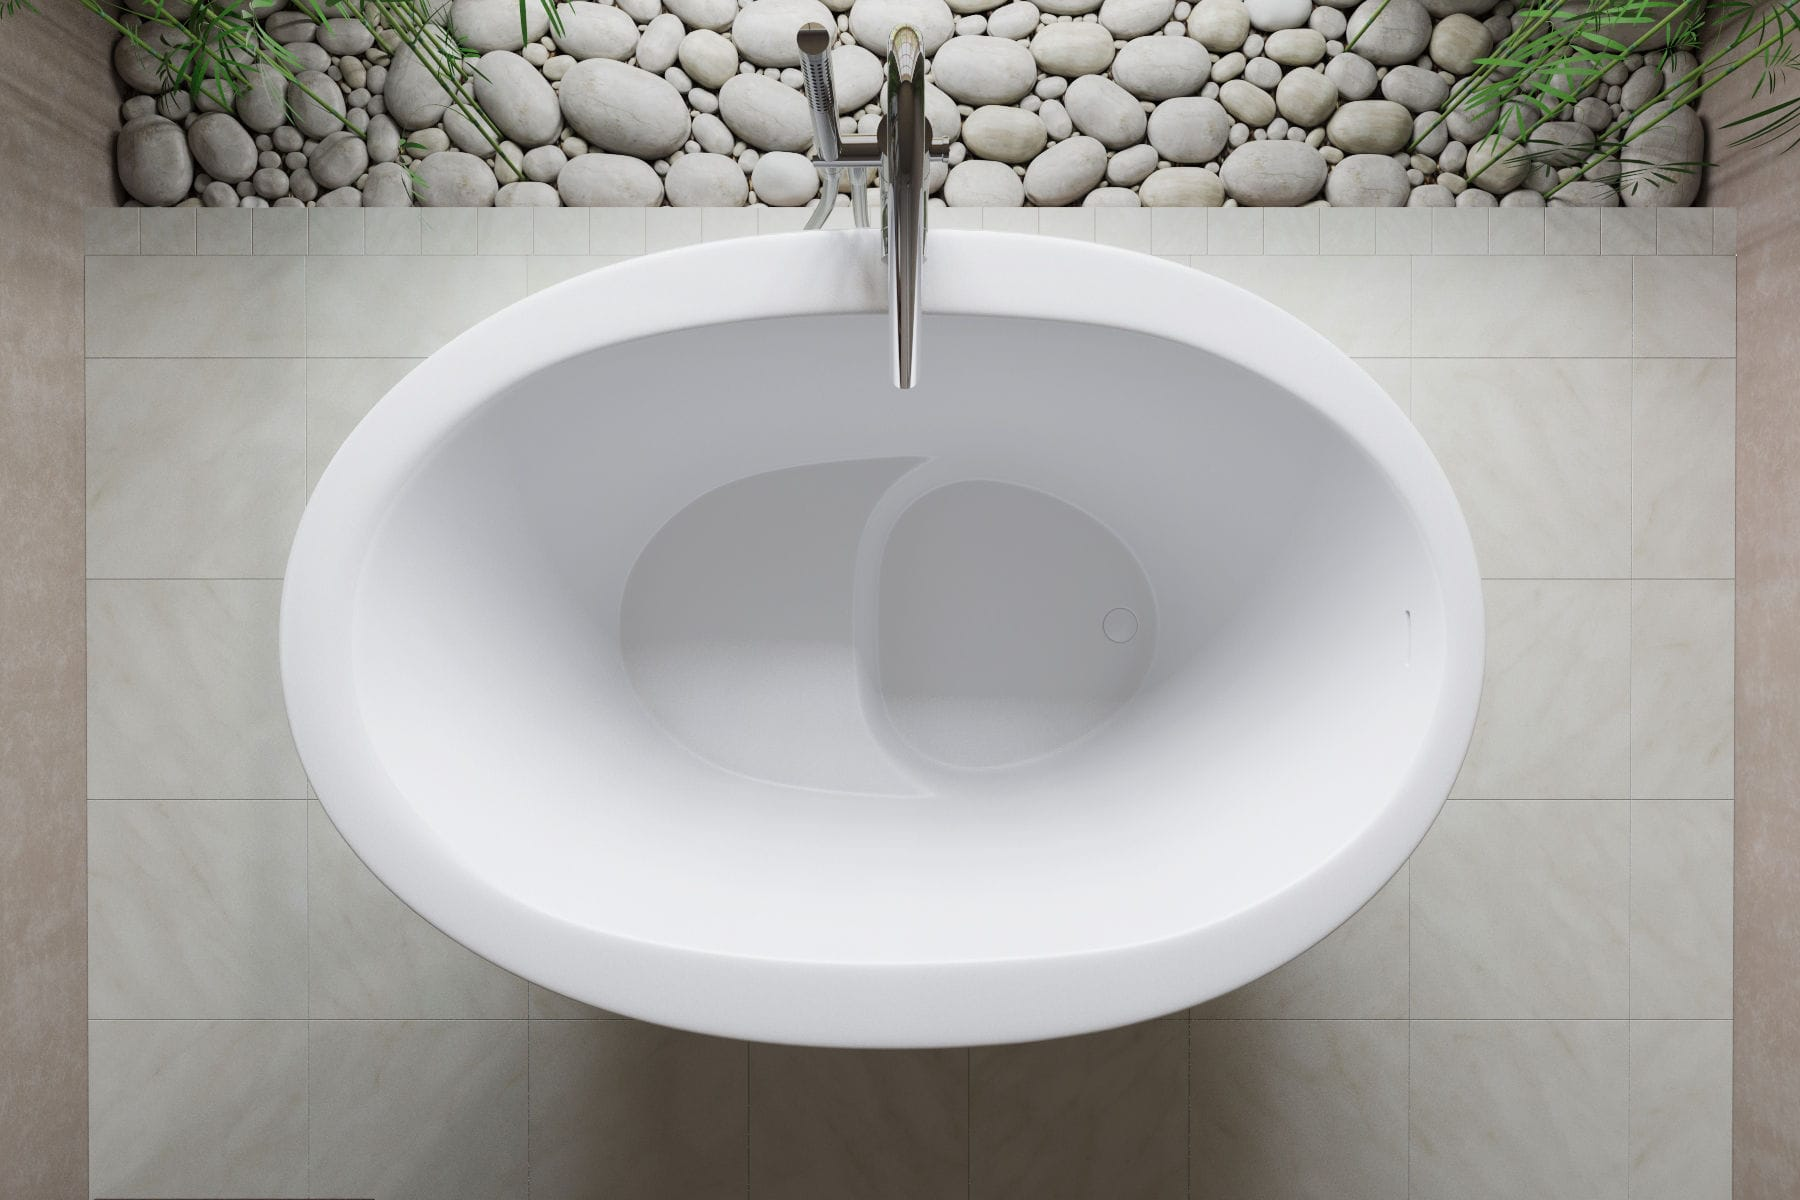 japanese soaking tub with seat. freestanding bathtub / oval solid surface stone true ofuro aquatica plumbing group japanese soaking tub with seat